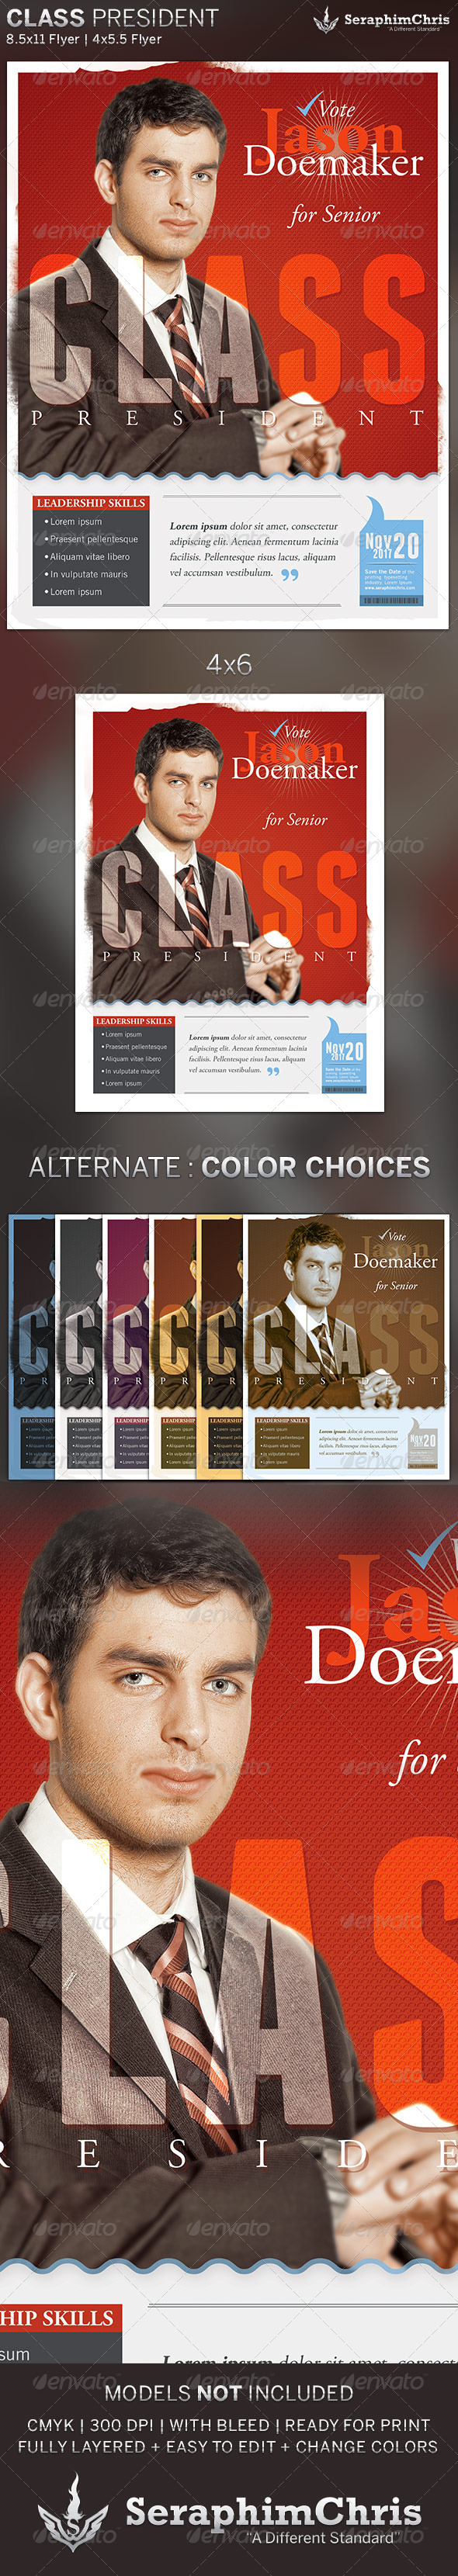 GraphicRiver Class President School Flyer Template 5478024